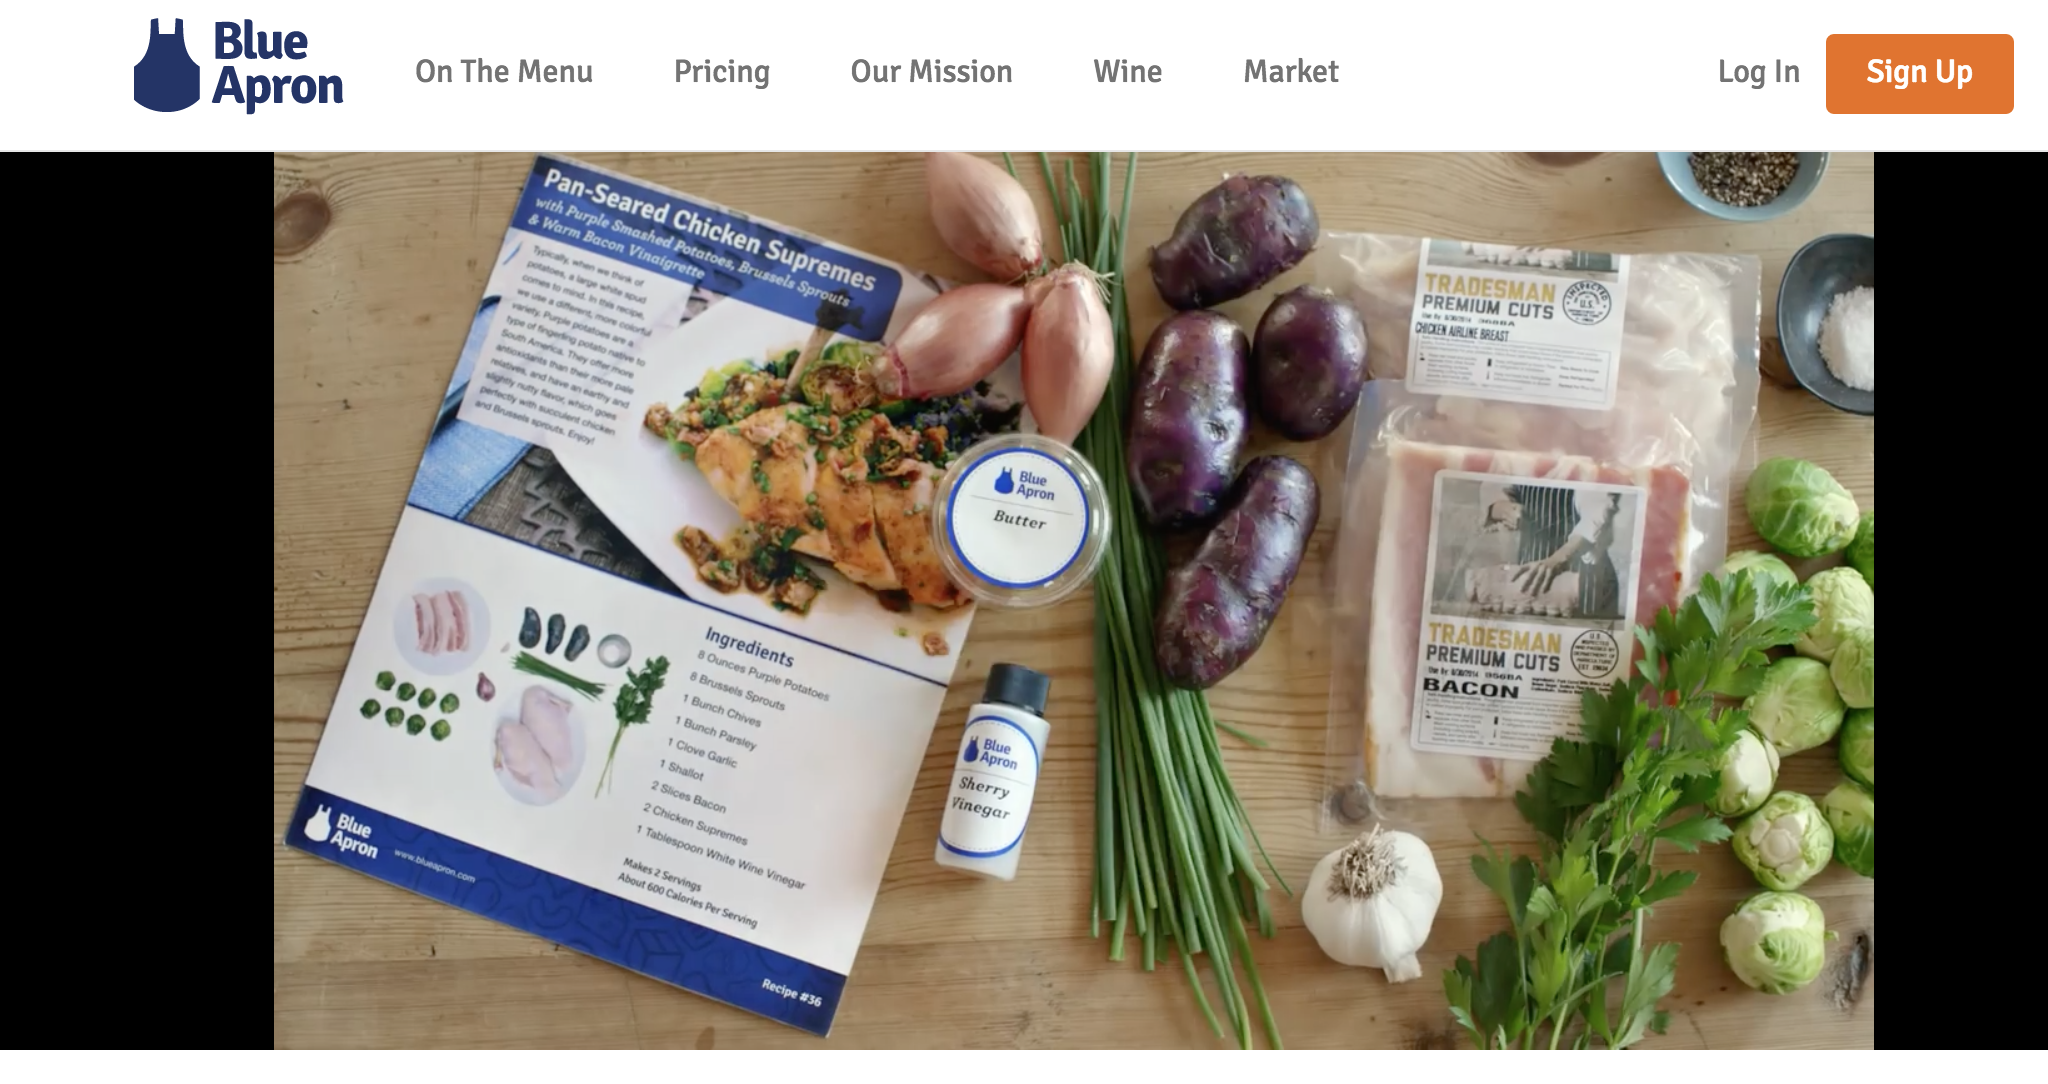 Blue apron login